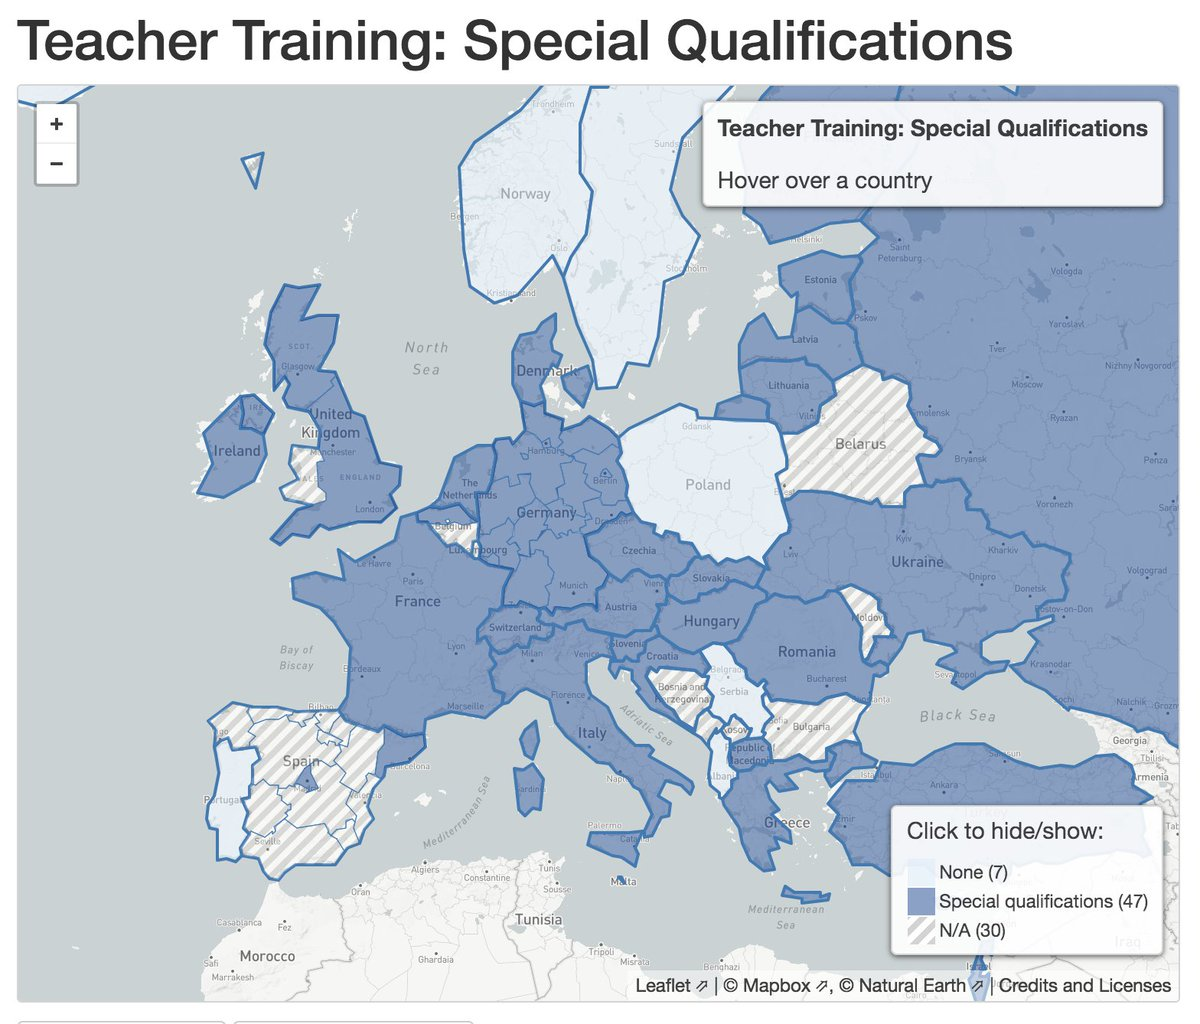 test Twitter Media - Collection of maps showing the 'state of #programming' in different #EU countries ... first contact with informatics, who decides about content, percentage of participation etc #kidscoding #digitaltransformation in #schools @eCraft2Learn @DOIT_Europe_Net @waag https://t.co/SeMSIYMIRY